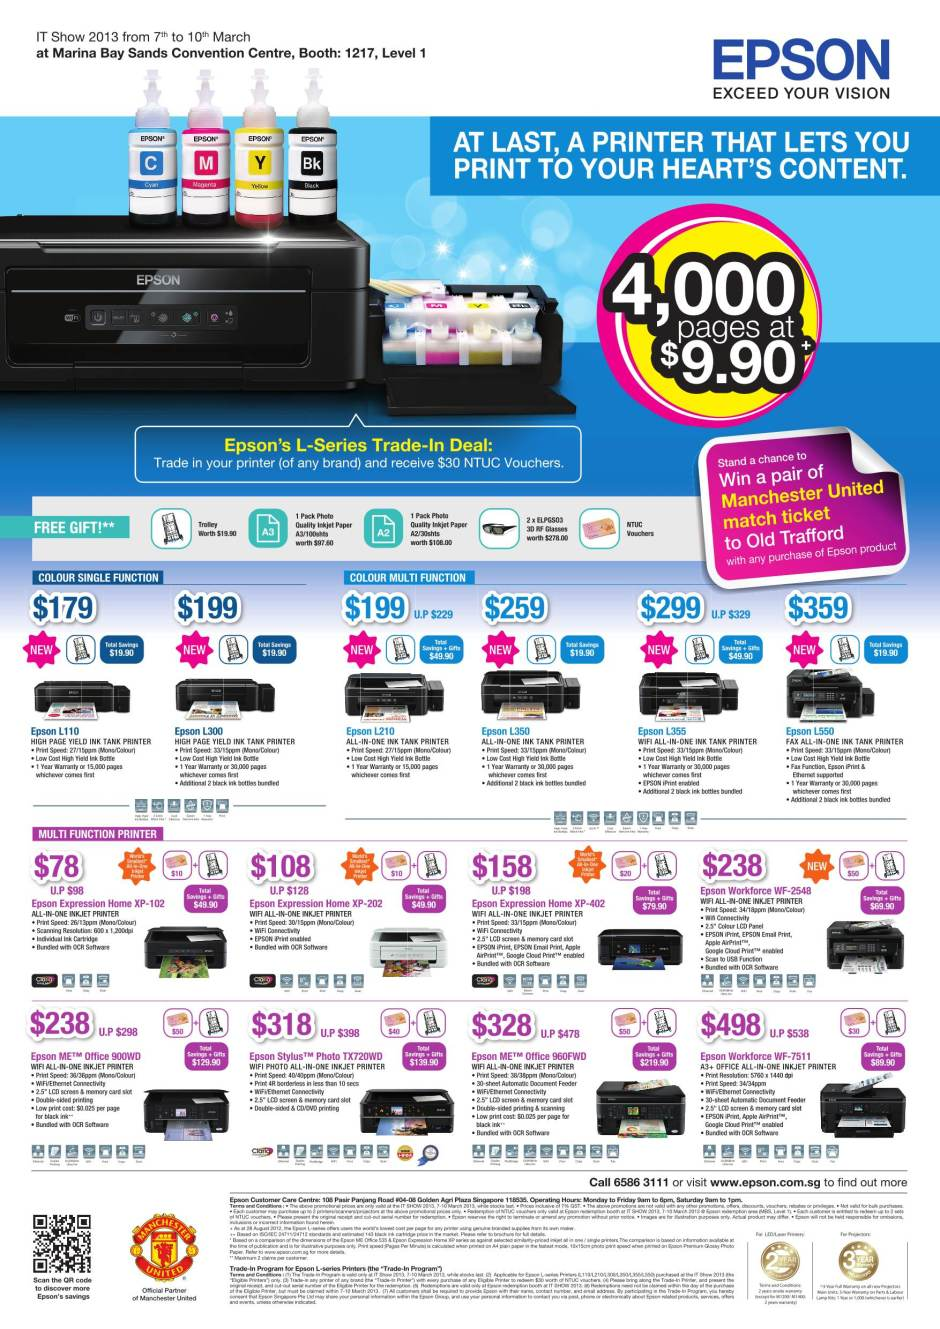 ITSHOW2013 - EPSON Flyer - Page 1